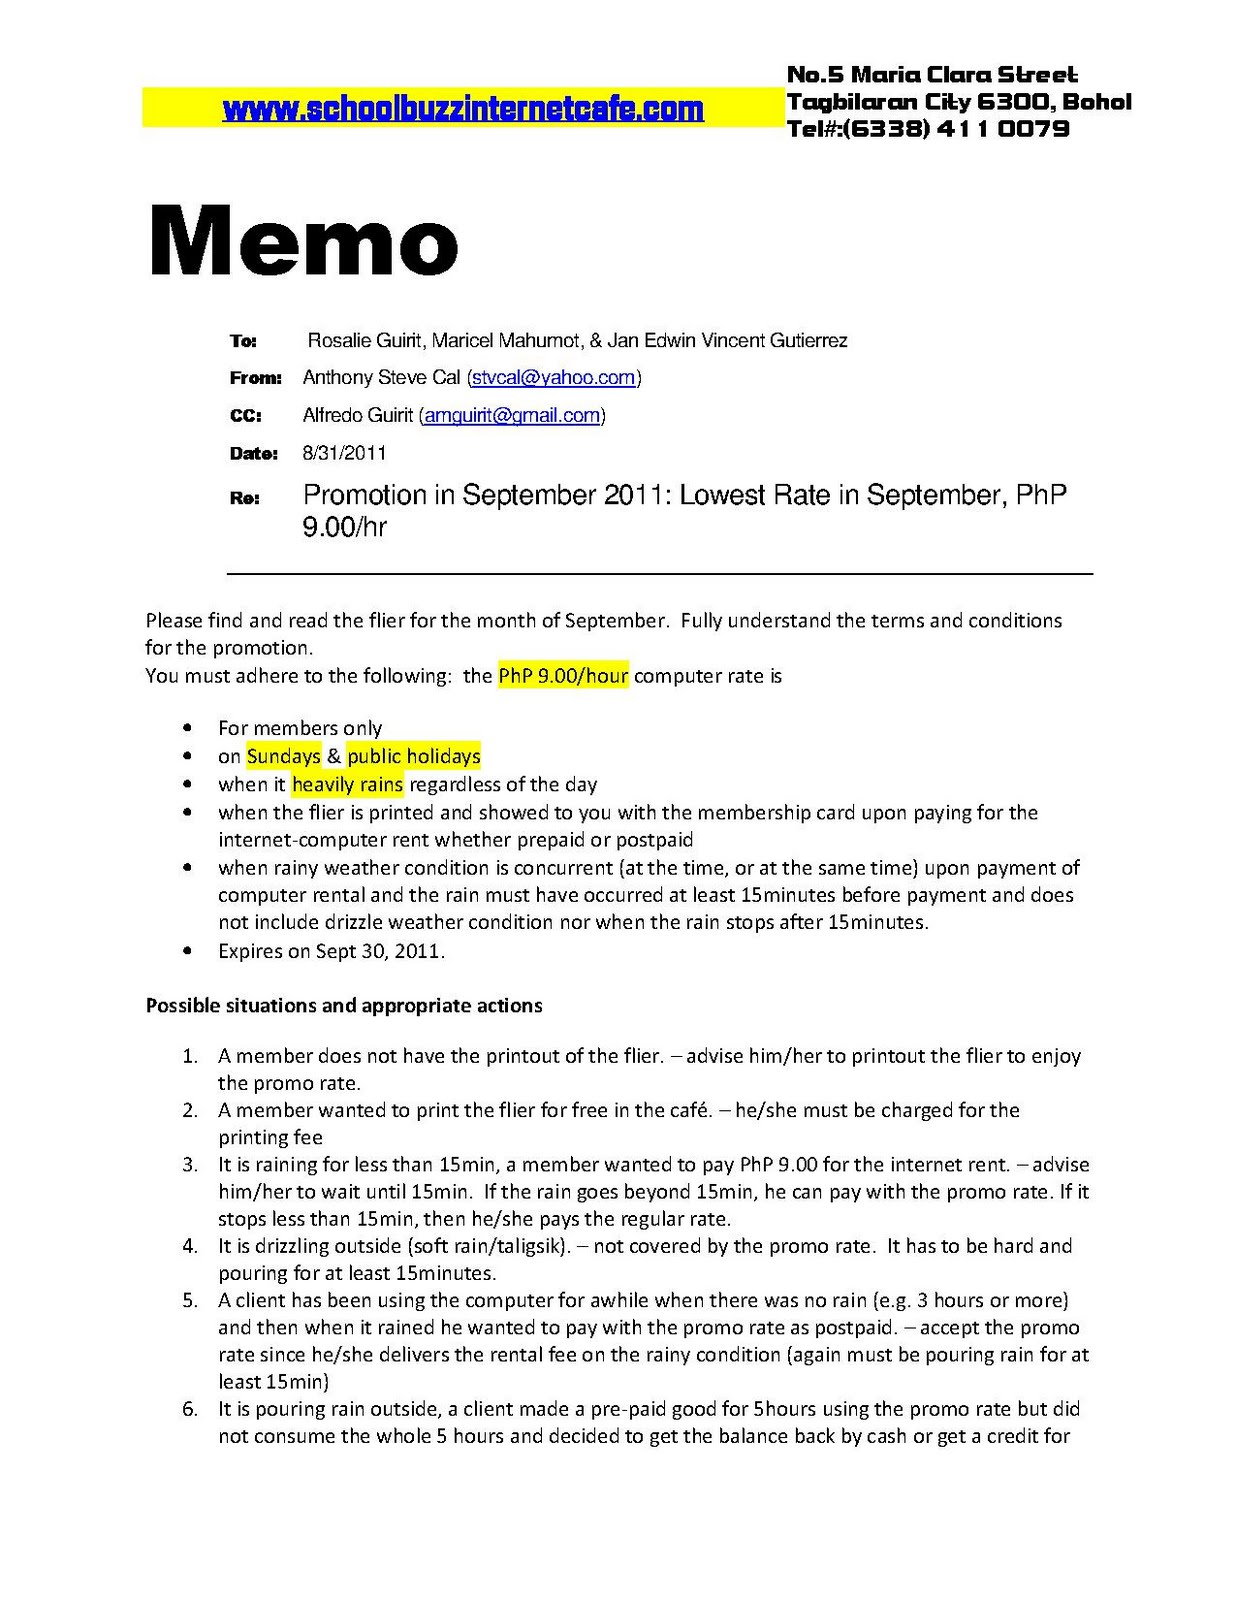 memo pages template cover letter templates memo pages template memo template printable word templates this also recordsstores existing and old memos